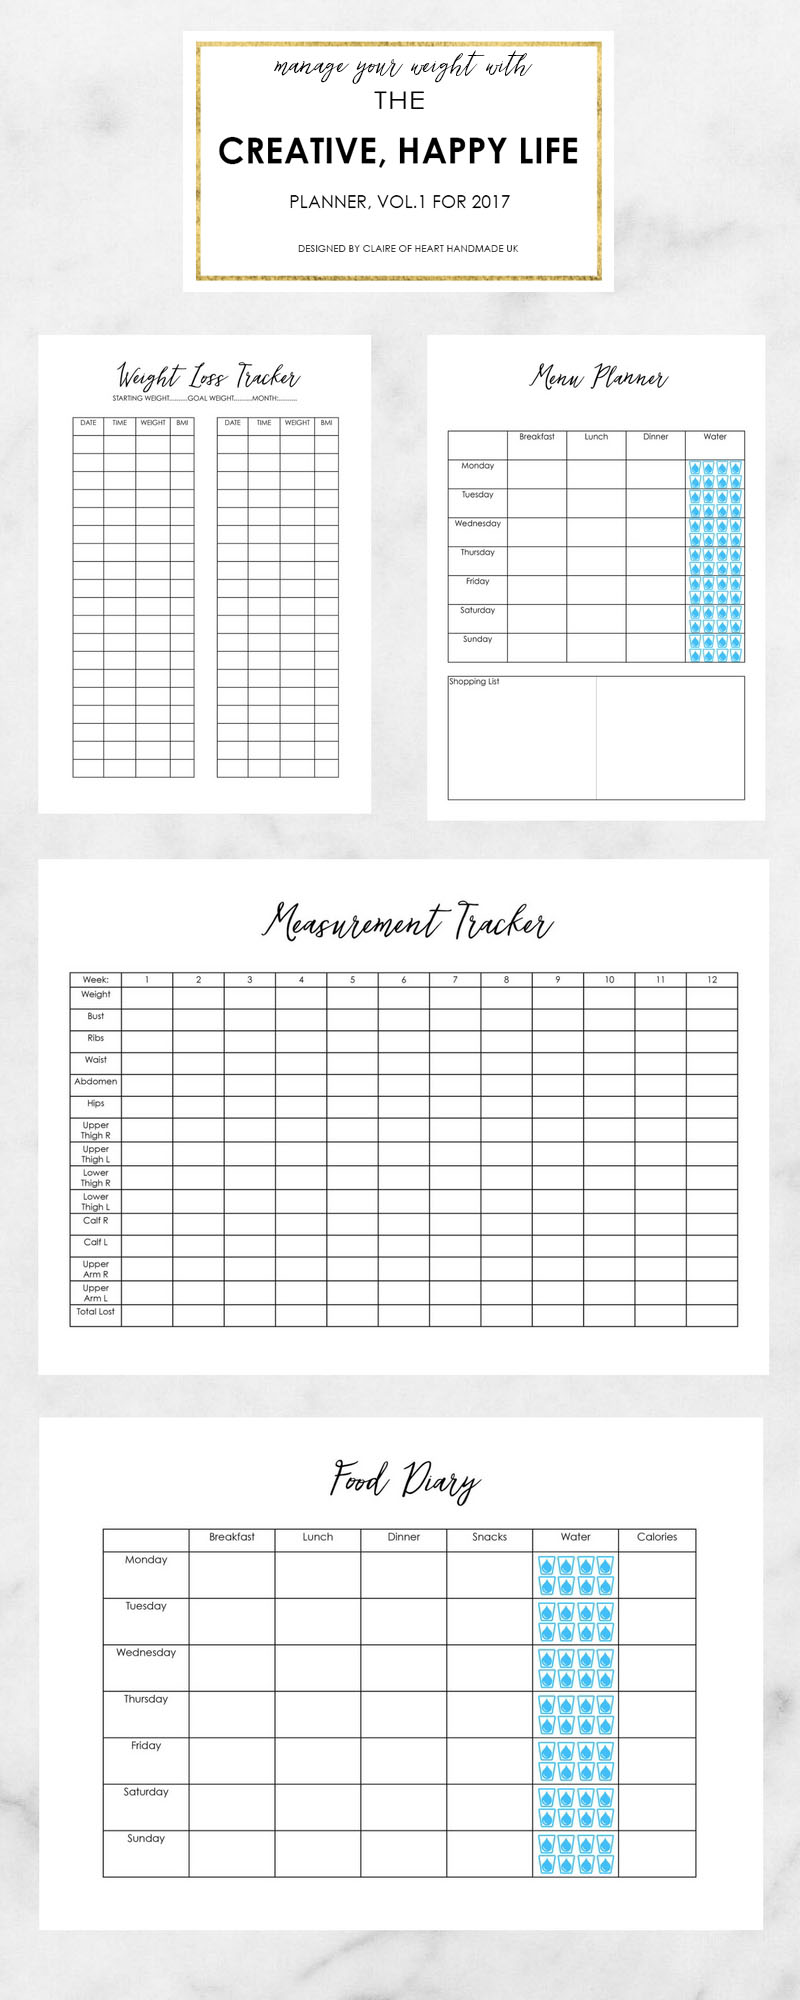 Taking Care Of Your Health - Creative Happy Life Planner 2017 by heart handmade uk